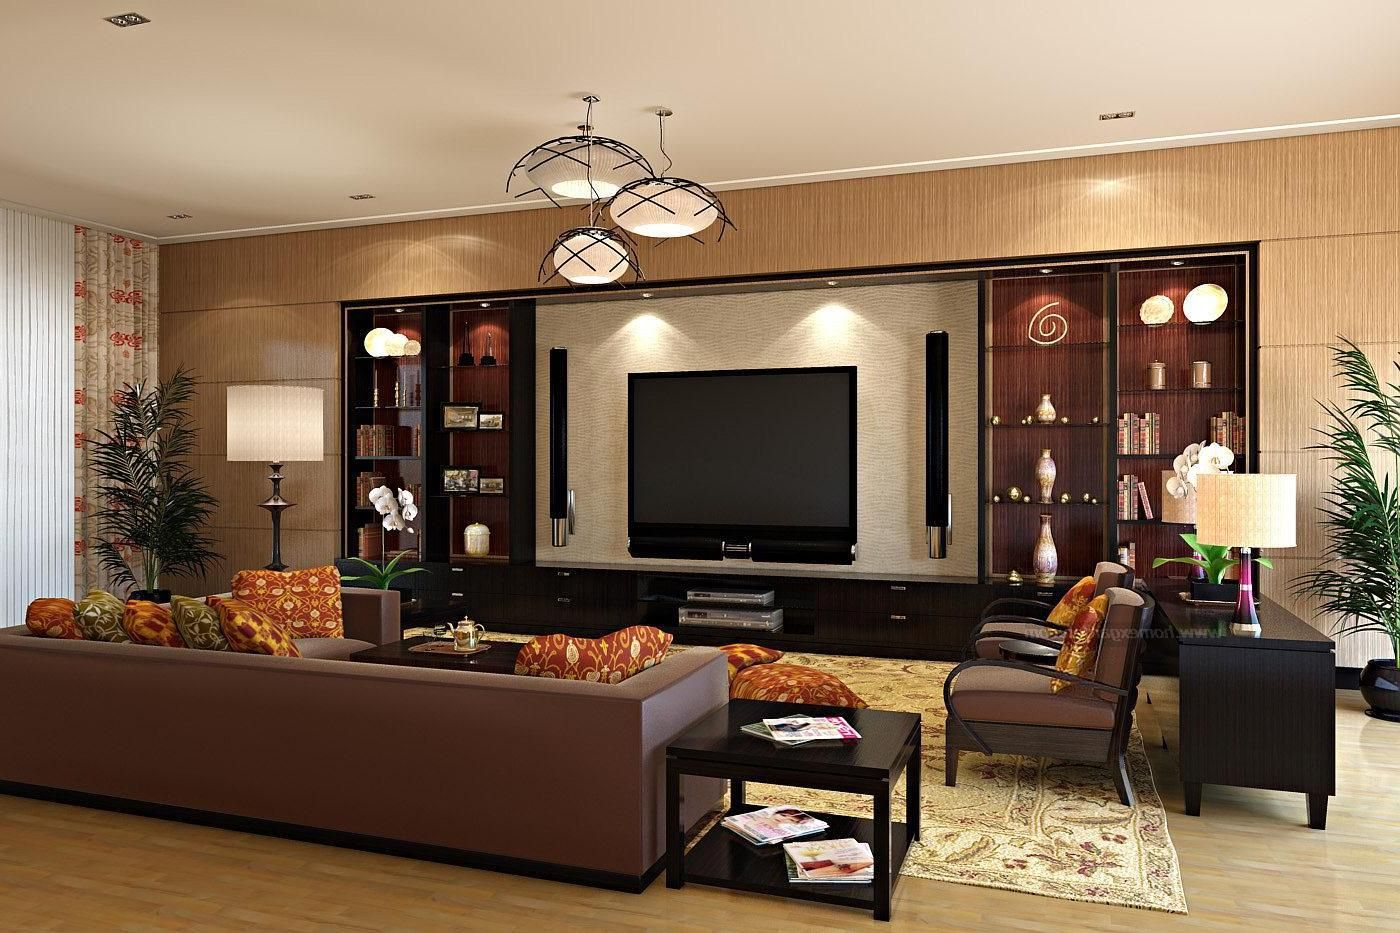 Chinese Interior Design Style  Chinese Interior Design Style Glamorous Best Living Room Design Ideas Review